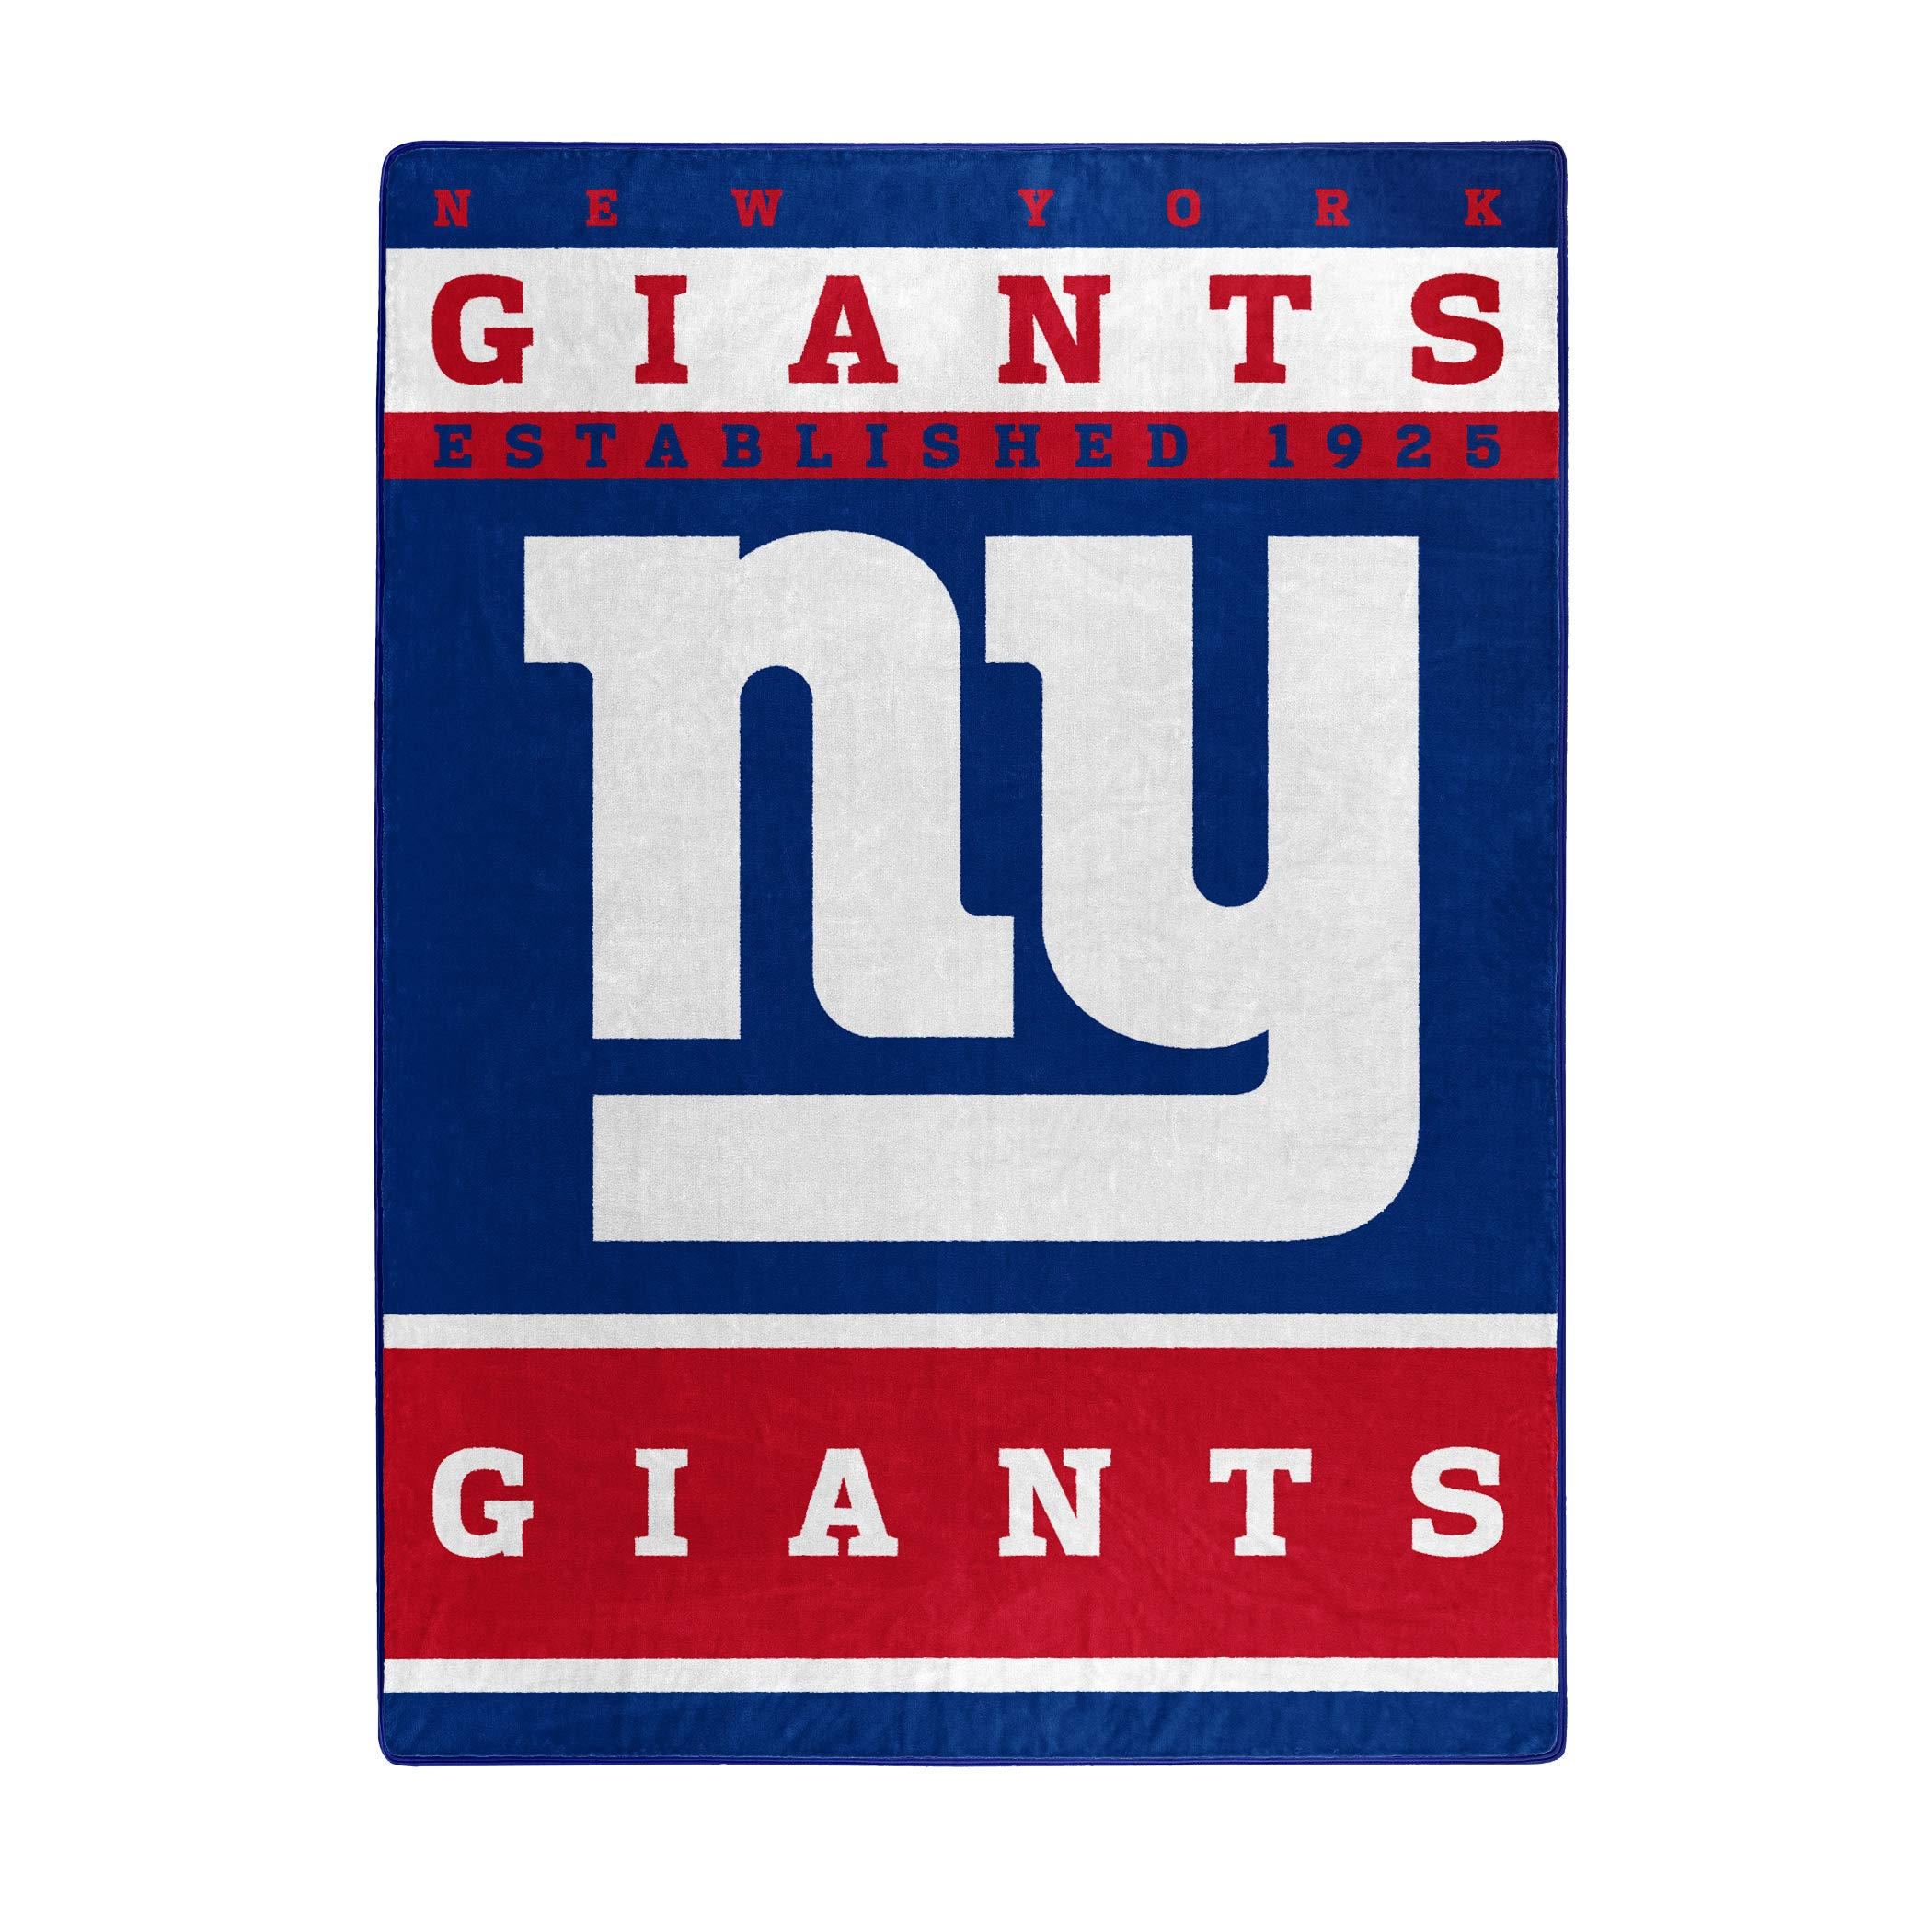 The Northwest Company Officially Licensed NFL New York Giants 12th Man Plush Raschel Throw Blanket, 60'' x 80'', Multi Color by The Northwest Company